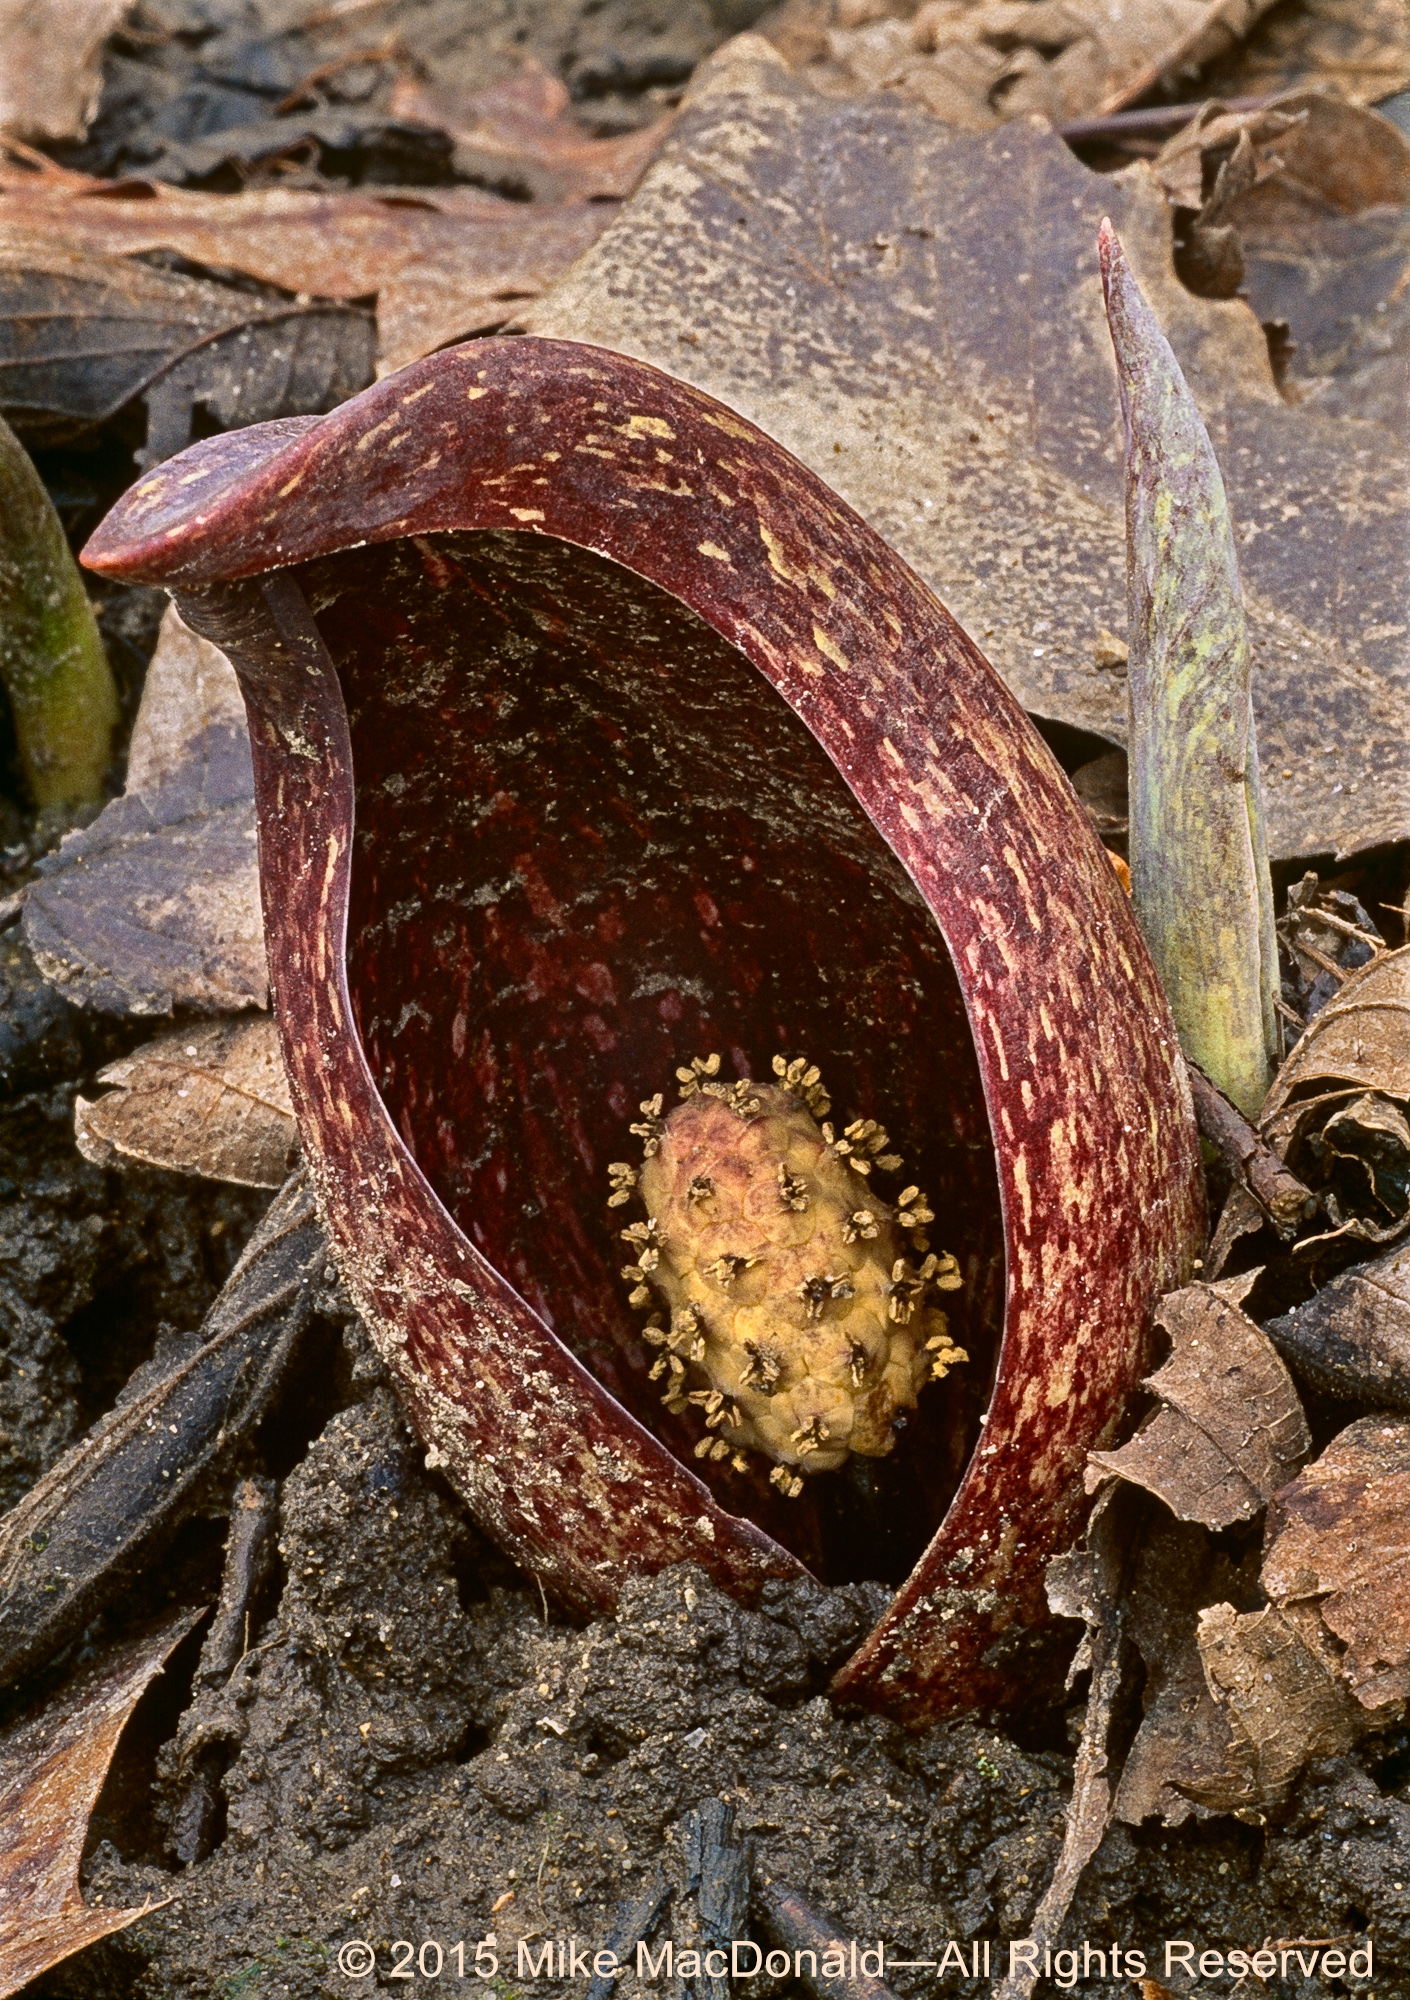 The speckled maroon spathe of skunk cabbage blends with leaf litter on the woodland floor, making it difficult to find when it first emerges. However, the plant becomes more conspicuous as it grows larger and produces its curious, oval-shaped yellow flower head, known as a spadix. The tiny delicate protrusions you see on the spadix are the flowers.  The spadix emits a foul odor that, to a human, is reminiscent of skunk. However, to flesh flies, carrion flies, and several kinds of gnats, the spadix smells and looks more like a yummy dead animal, a trick the plant uses to lure them in for pollination. The spadix is also where the process of thermogenesis takes place. It warms the confines of the spathe, providing a cozy haven for pollinating insects while transmitting the smell of carrion far and wide.*